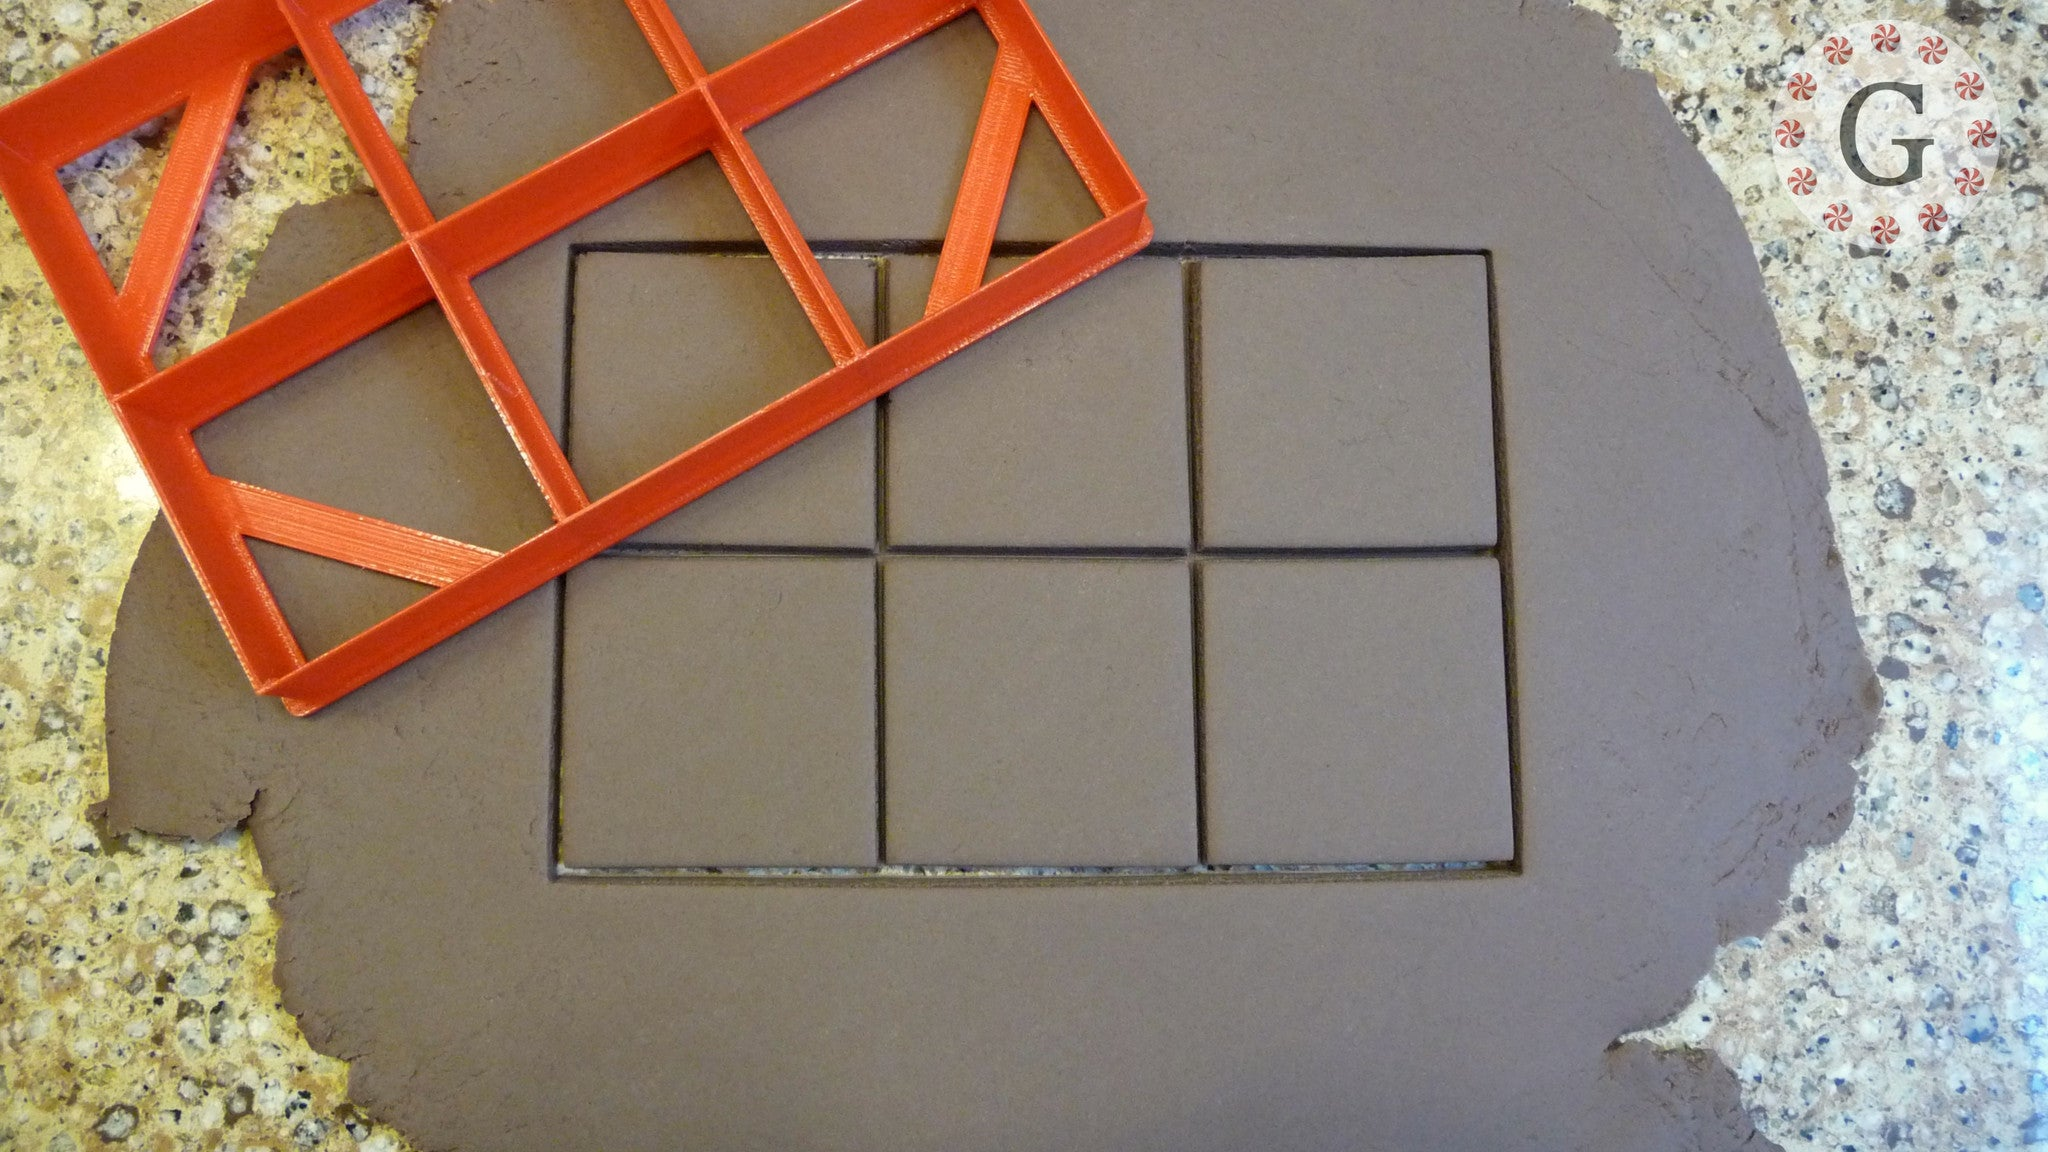 2 Inch Square Multiple Cut Cookie Cutter - 3 Size Options